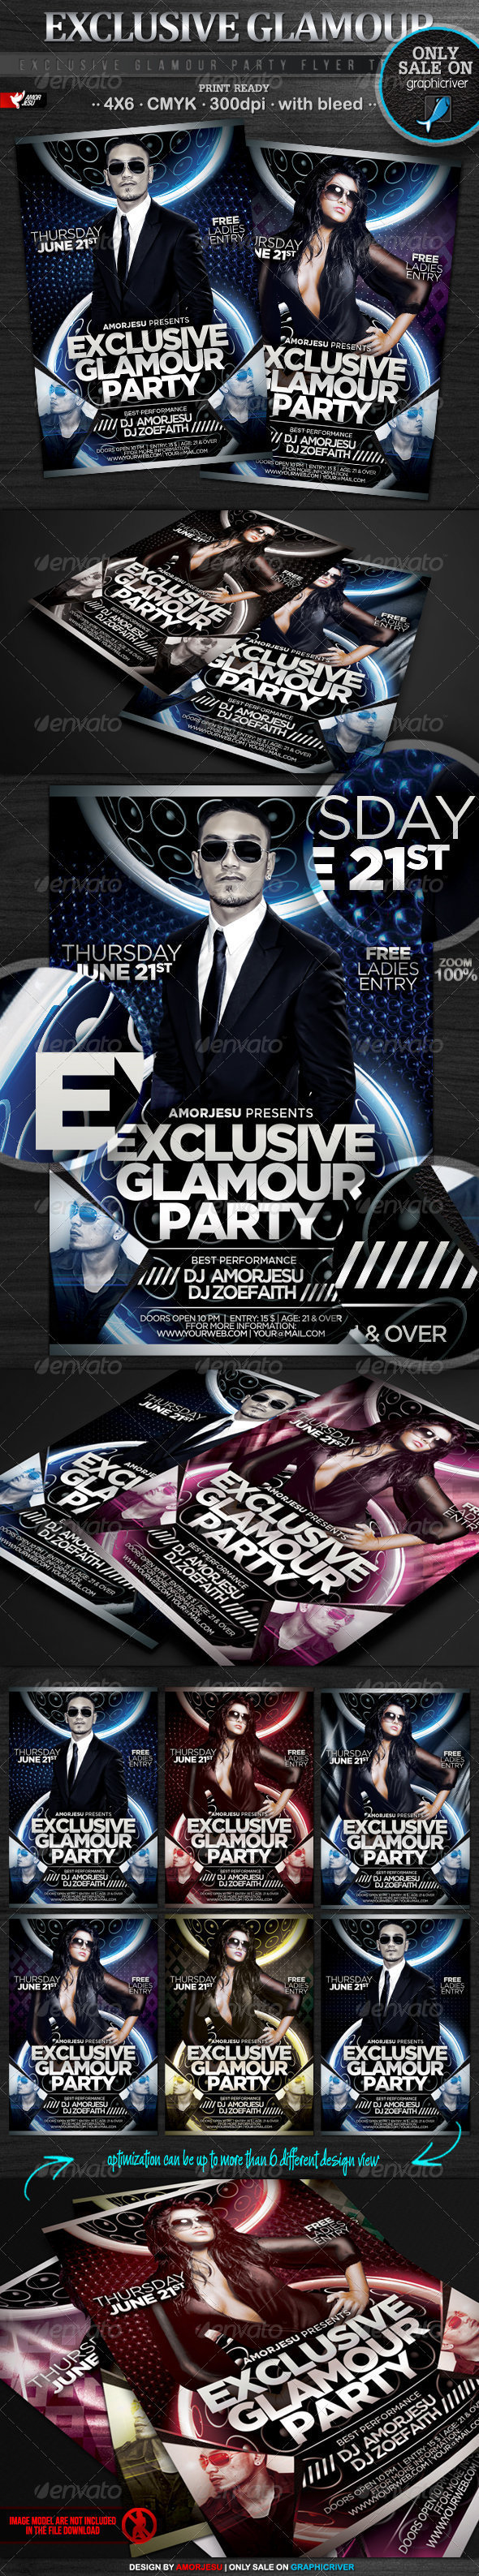 Exclusive Glamour Party Flyer Template - Clubs & Parties Events